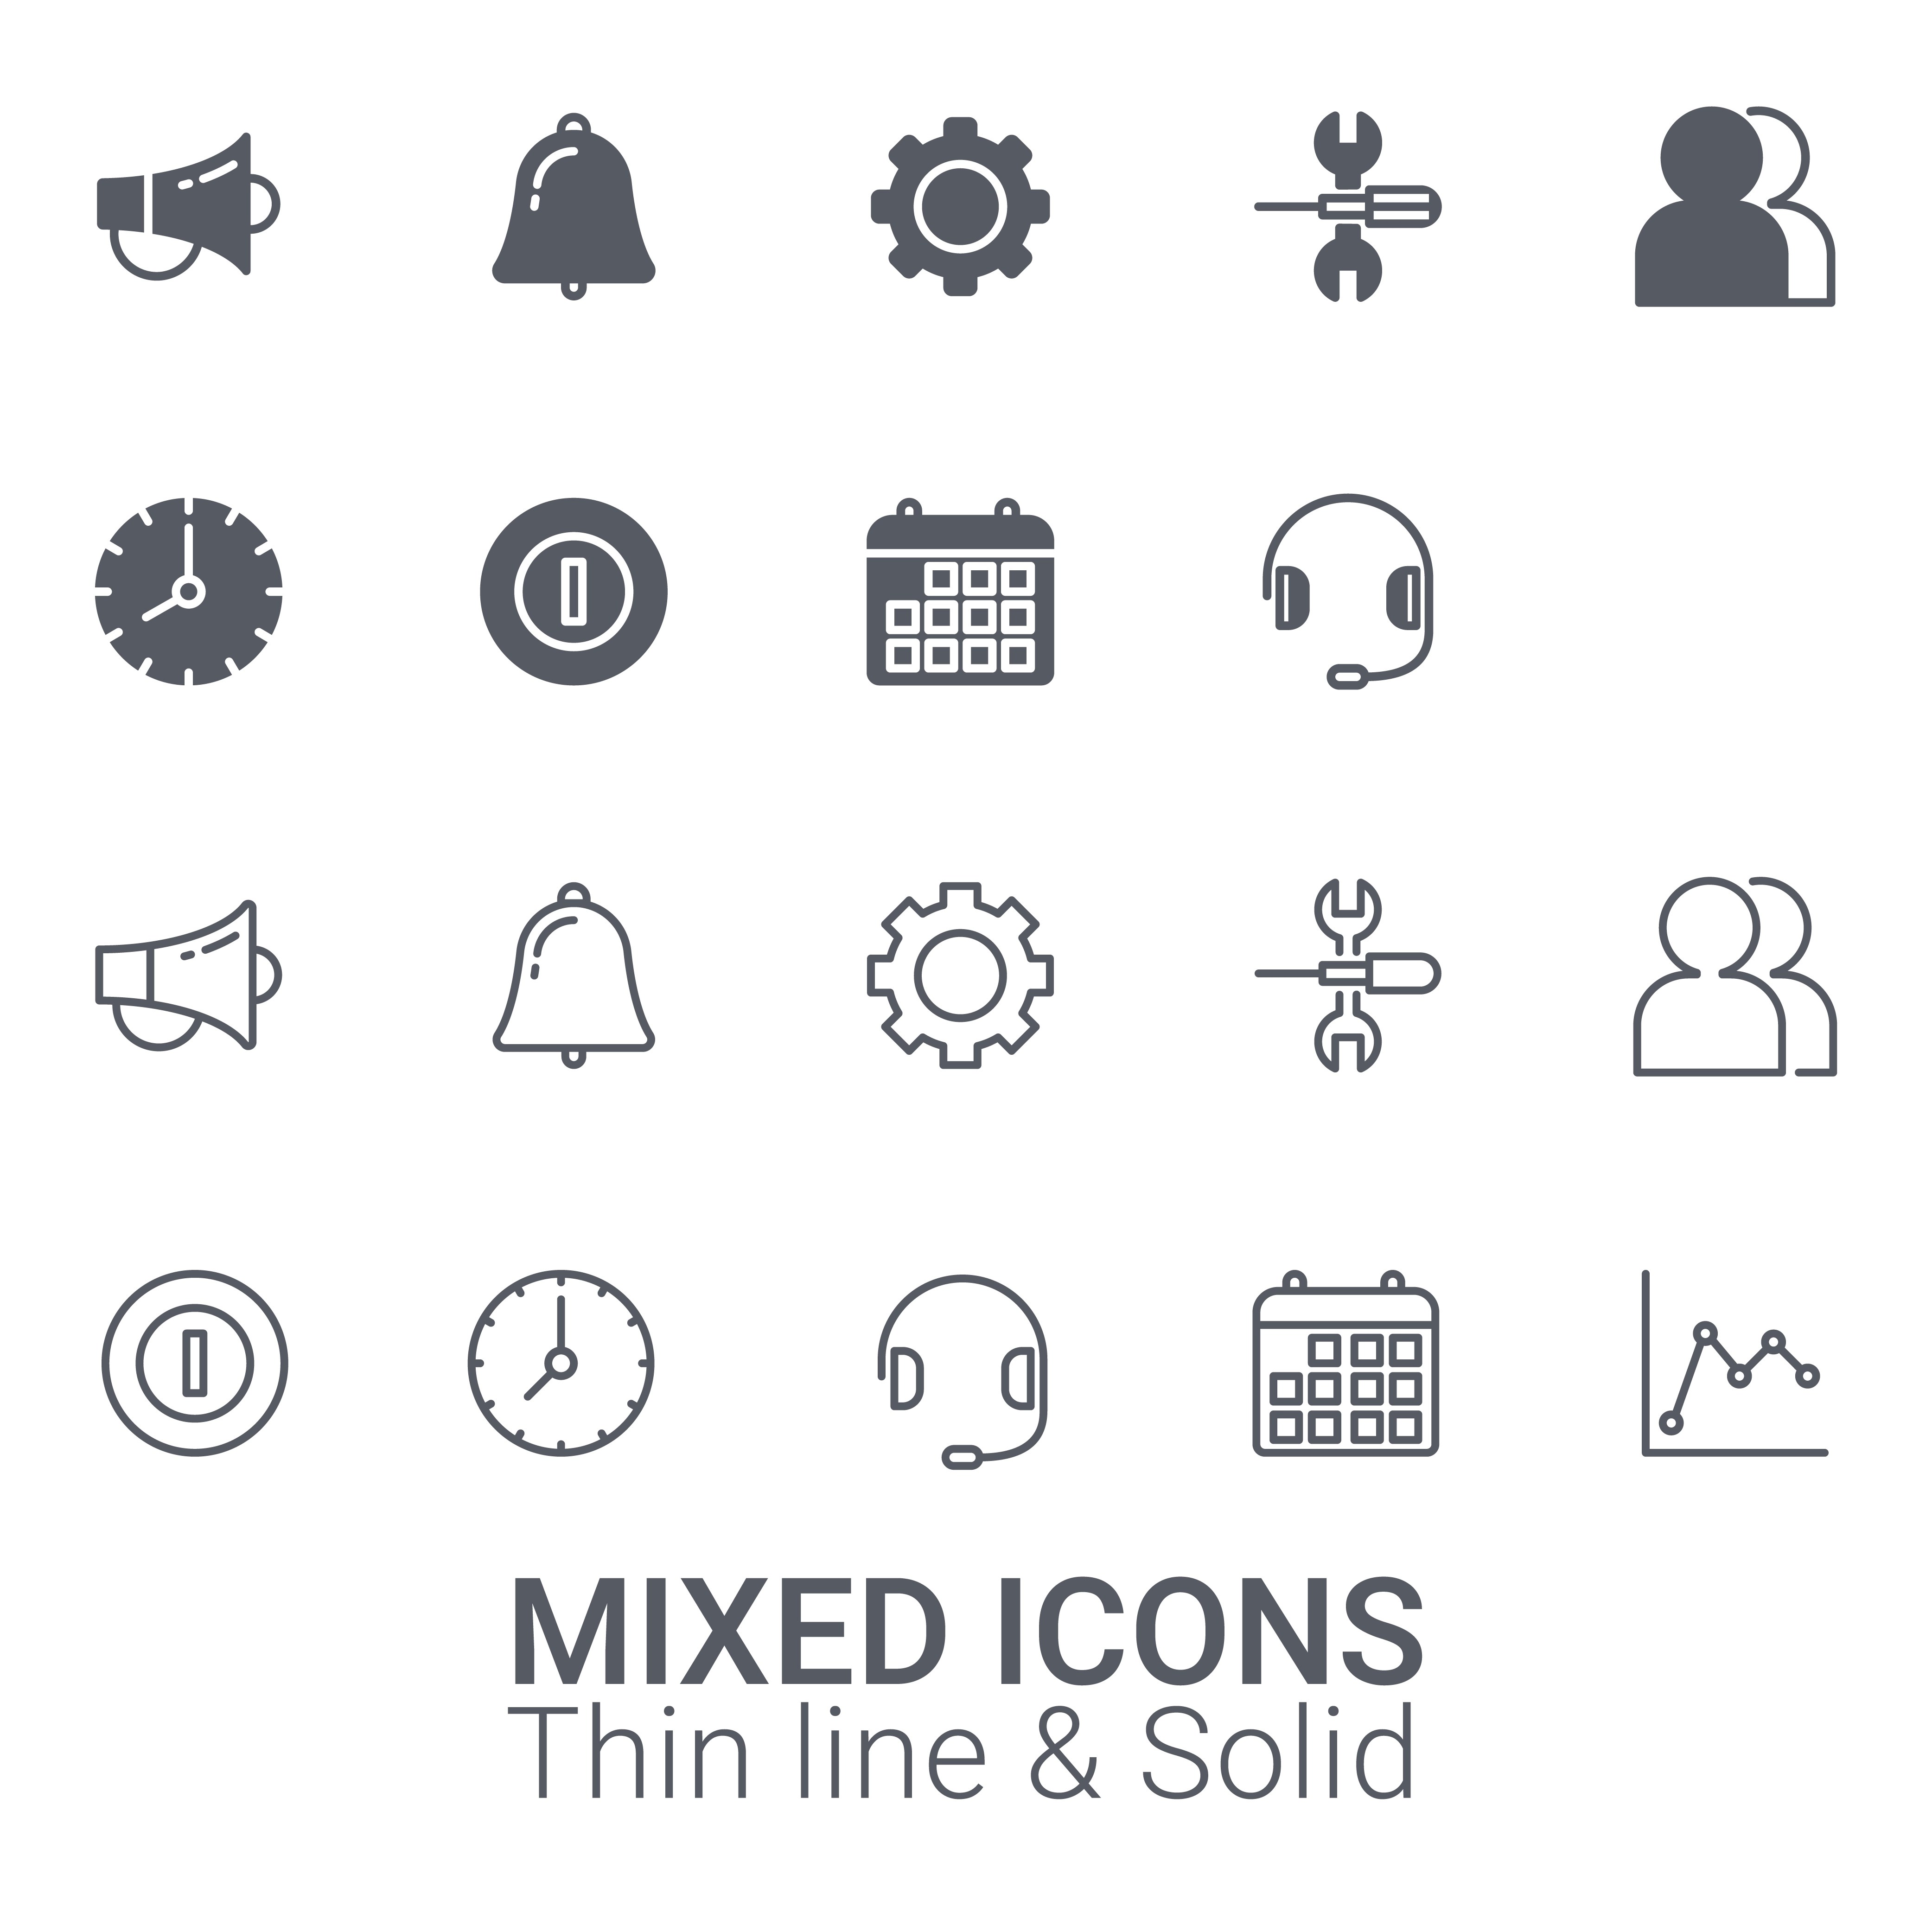 Set Of Mixed Icons Thin Line And Solid Icon